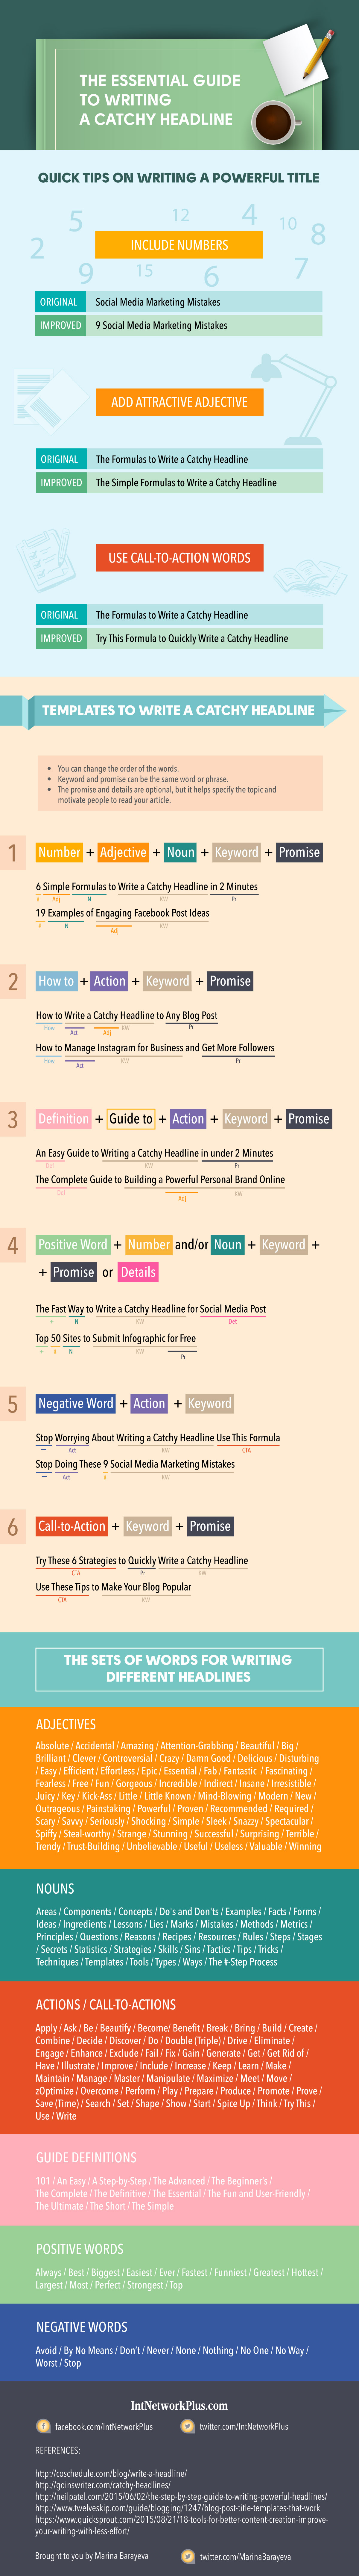 Tactic #1: Plan Your Writing